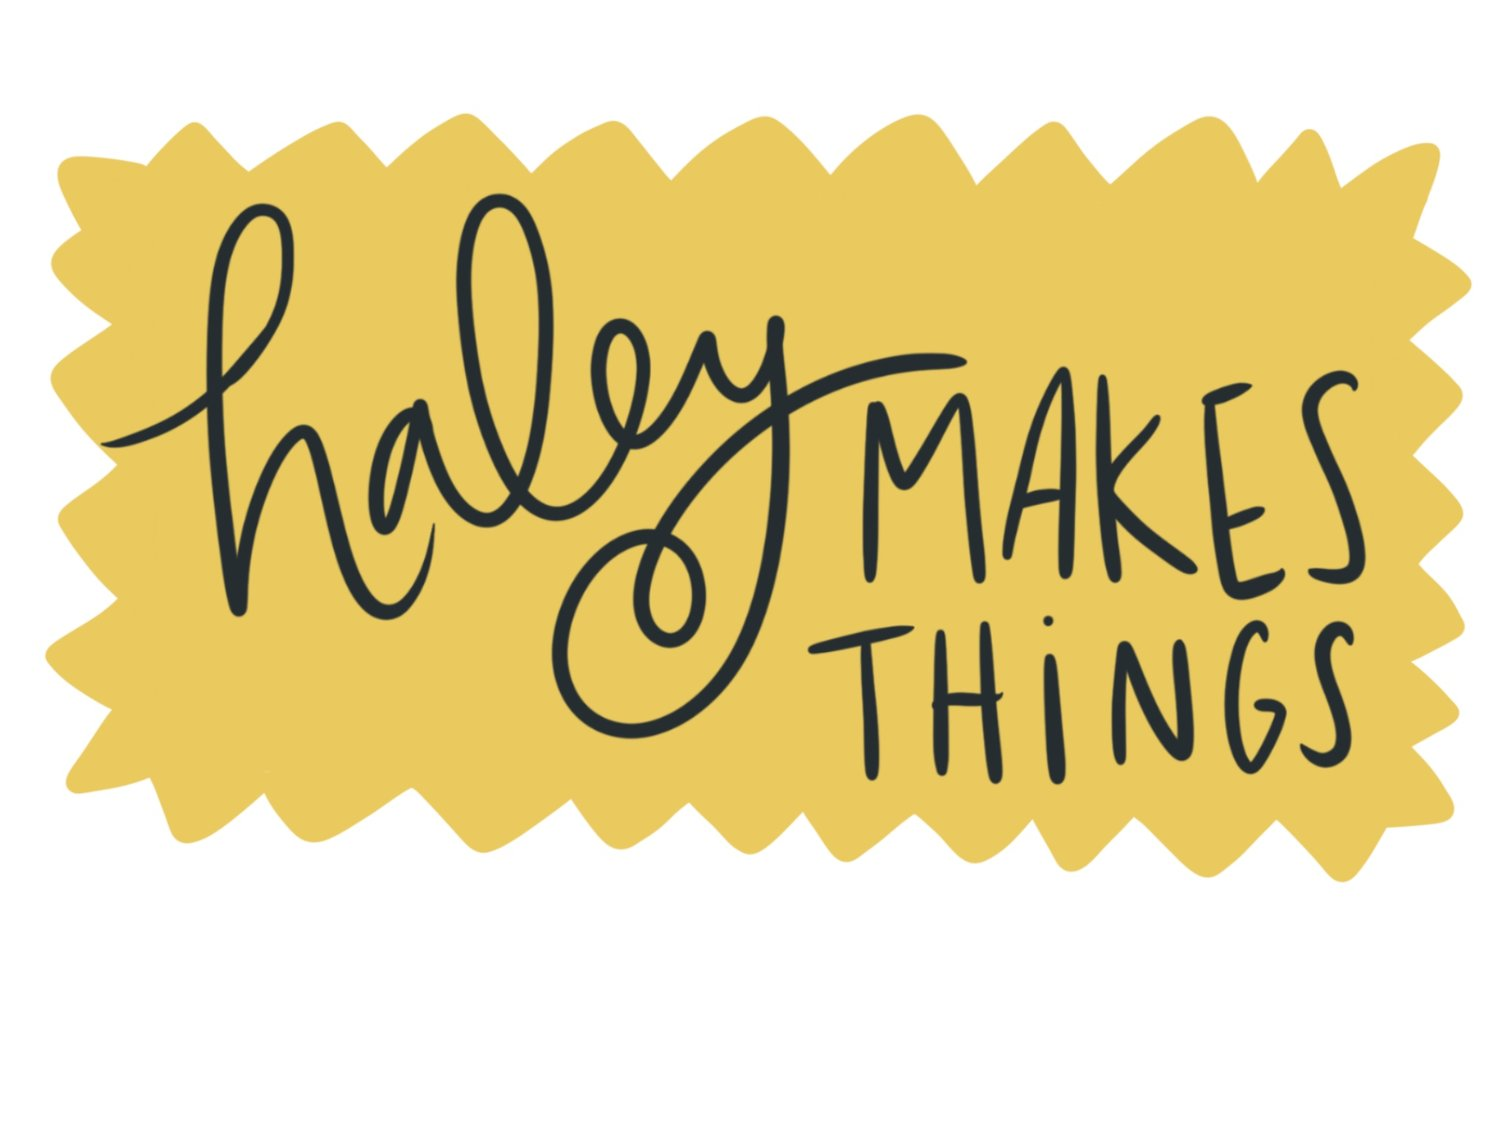 Haley Makes Things